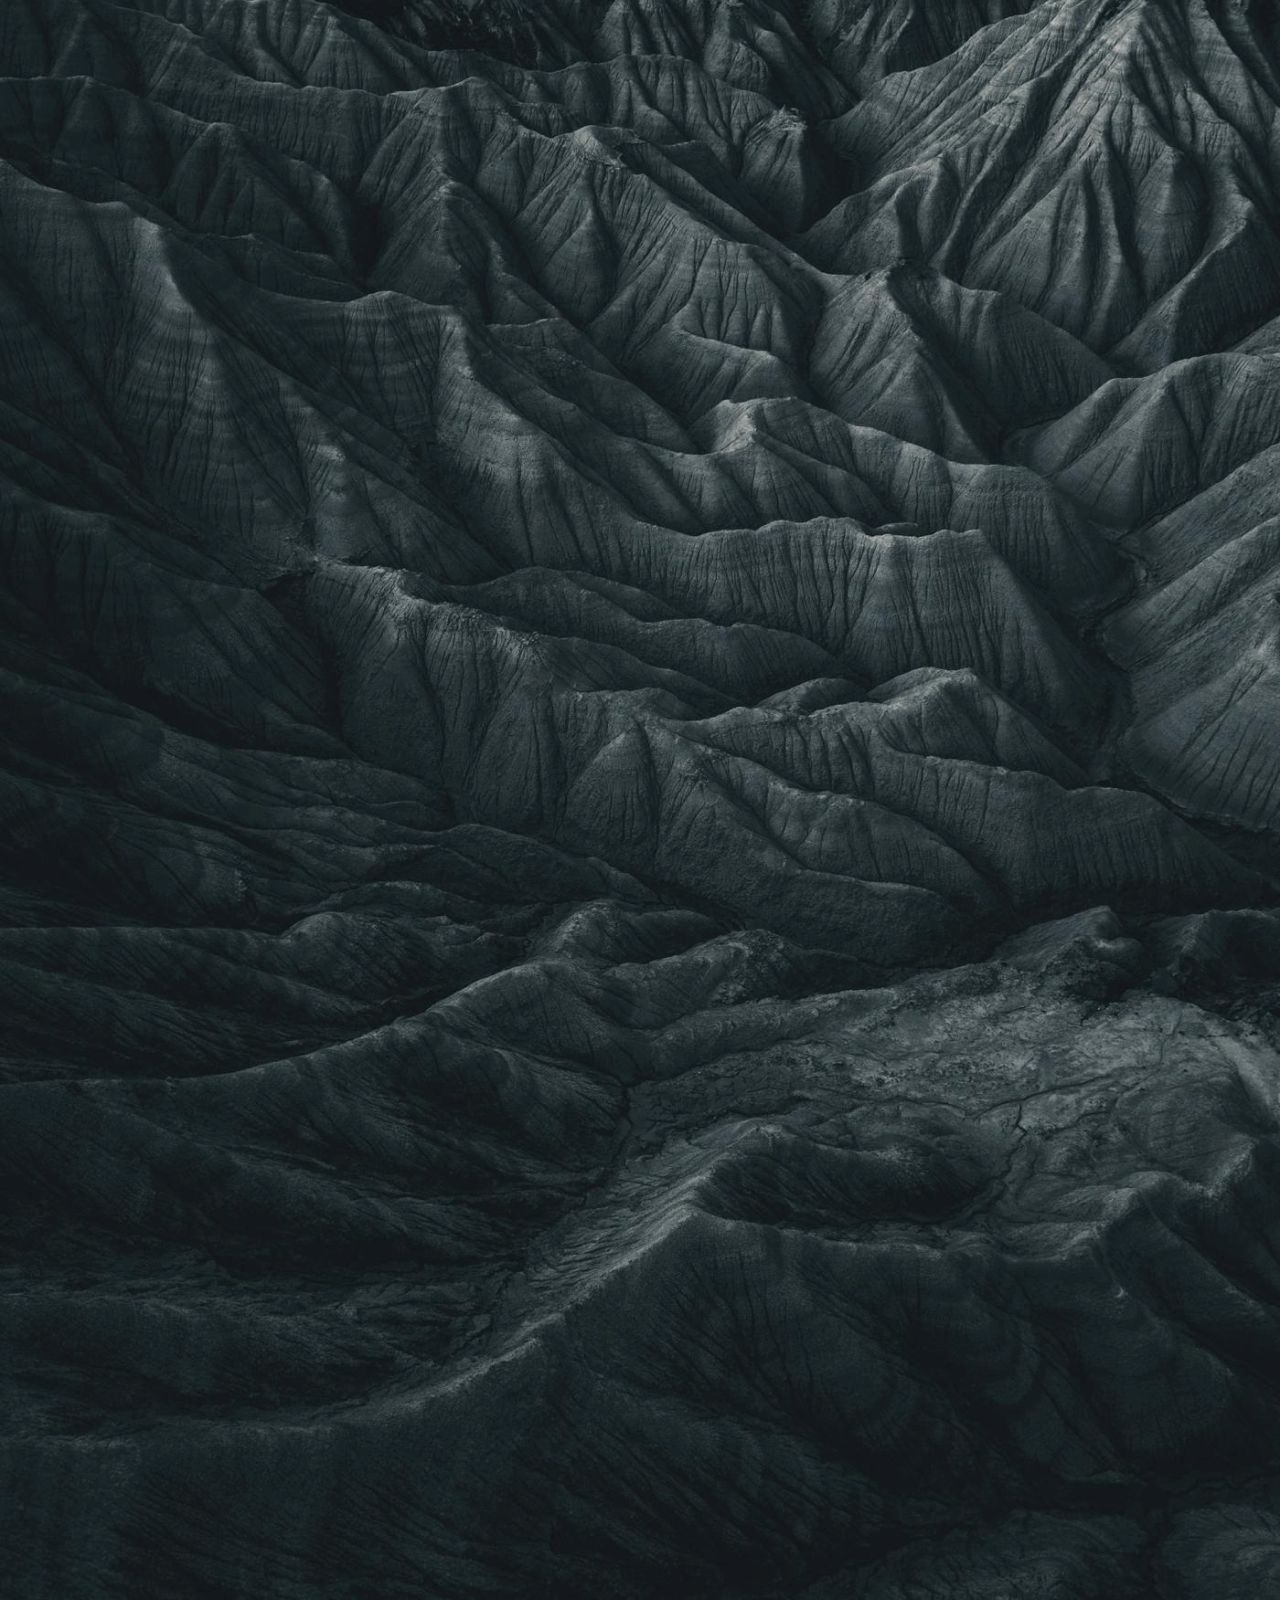 landscape photography mountain by witold ziomek